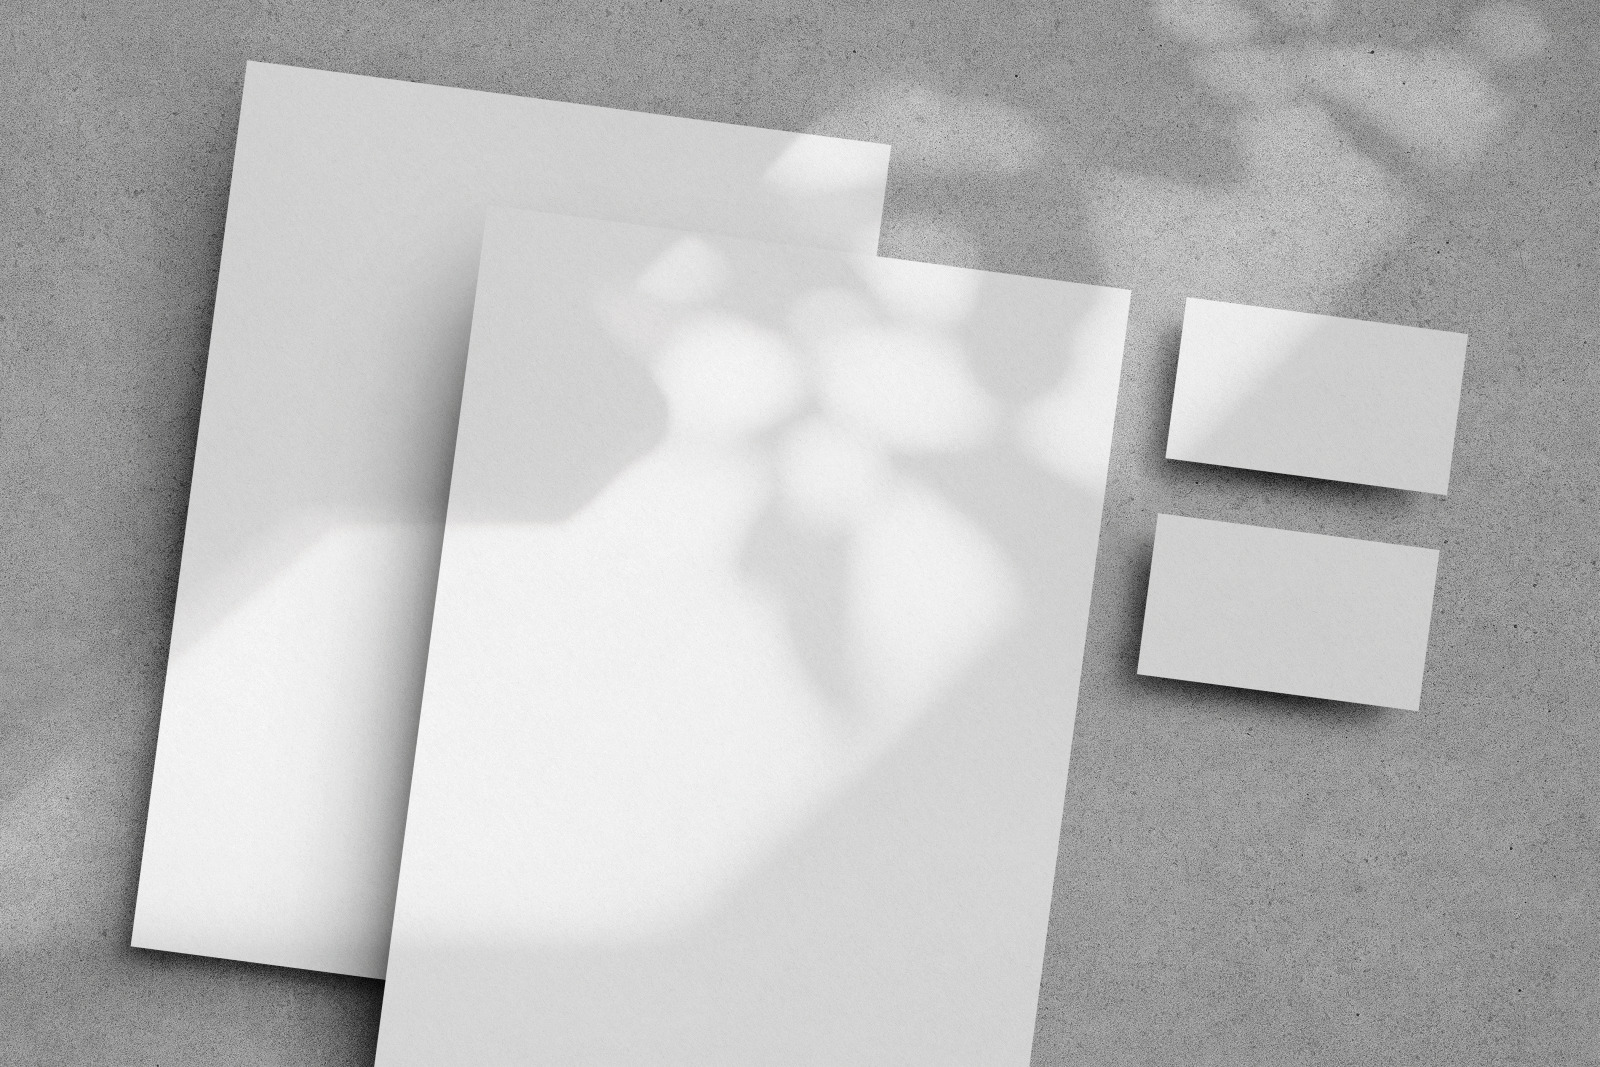 Free Stationery Paper with Shadow Mockup